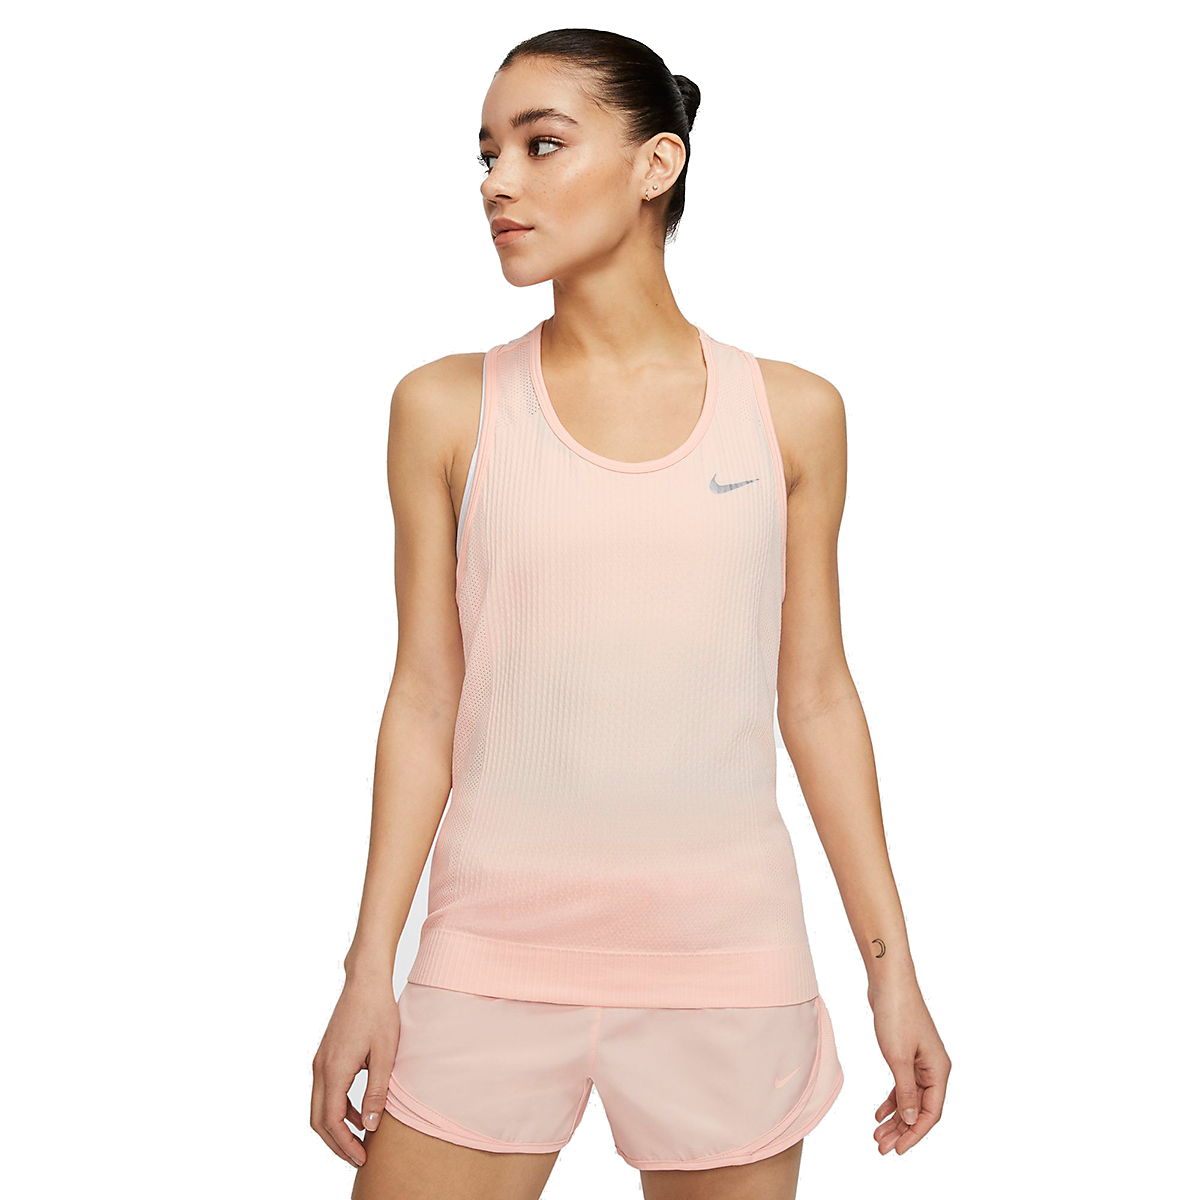 Women's Nike Infinite Running Tank - Color: Washed Coral - Size: XS, Washed Coral, large, image 1